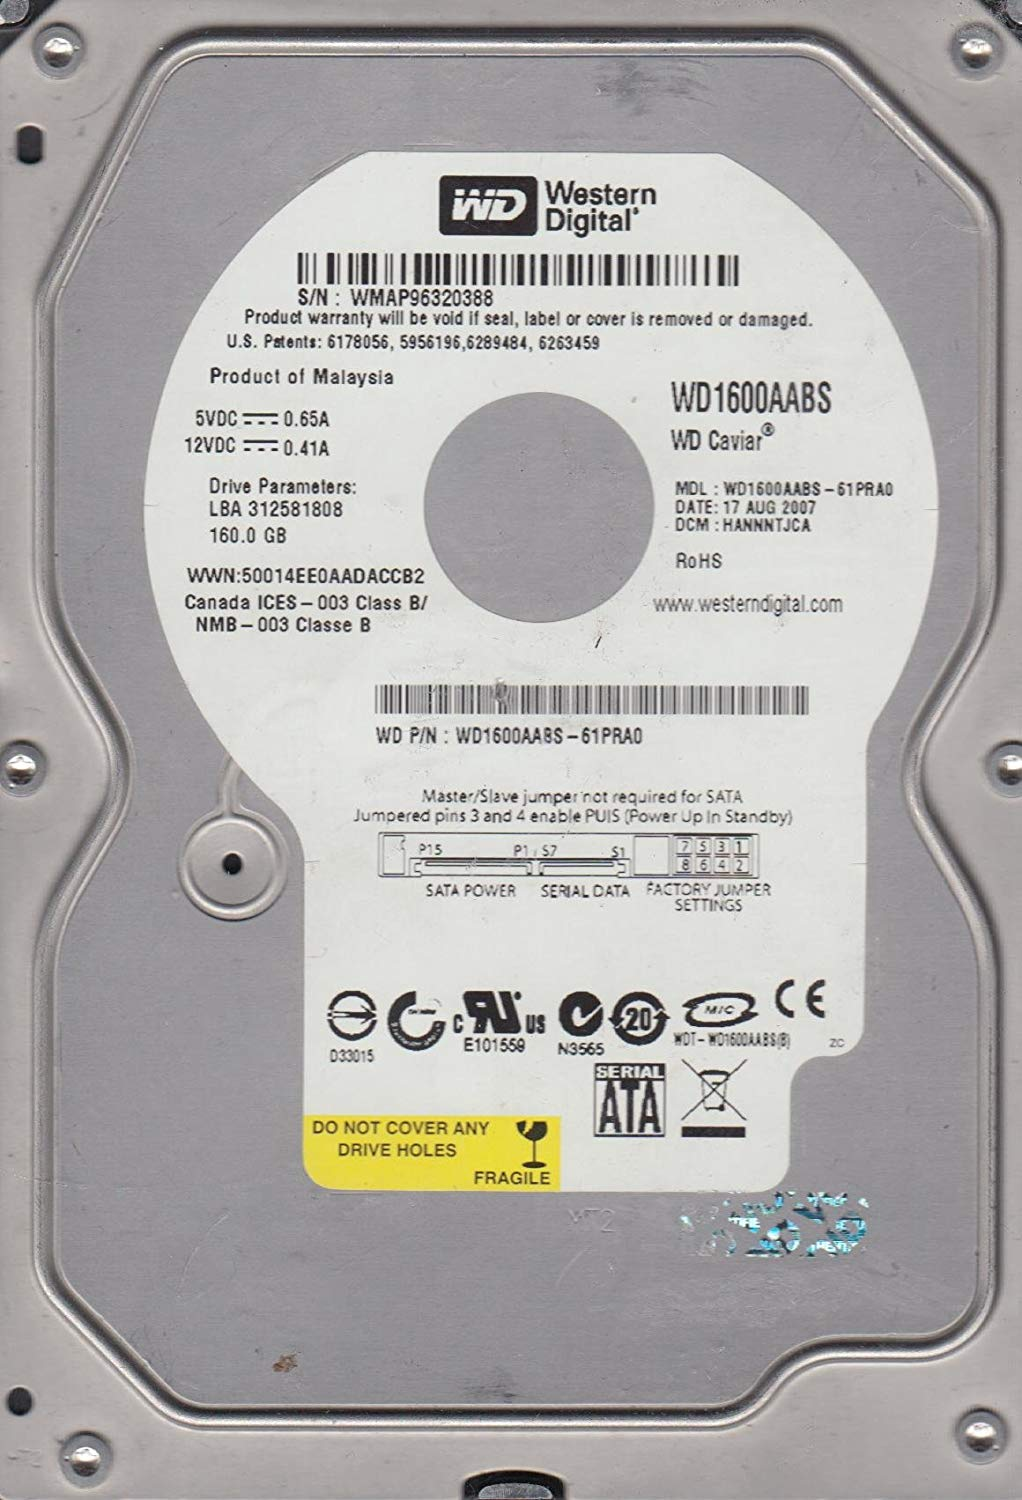 WD1600AABS